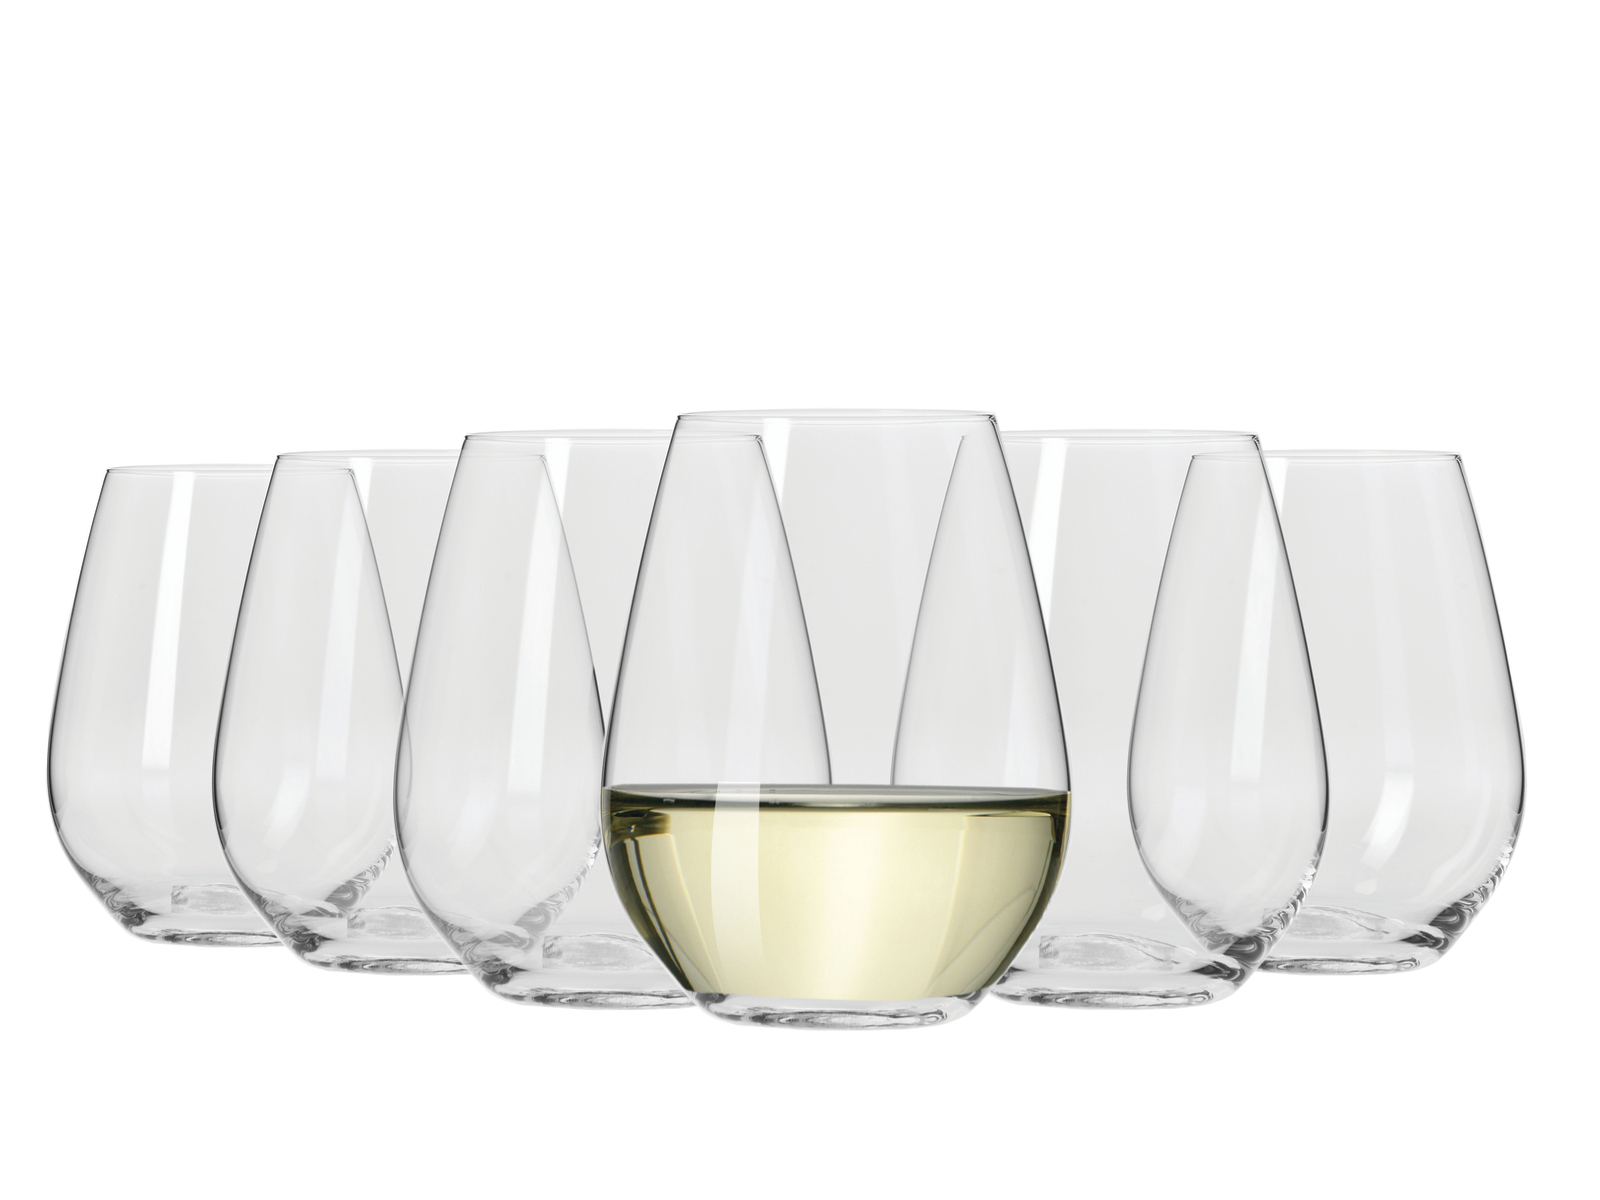 Krosno Vinoteca Stemless White Wine - Set of 6 400ml